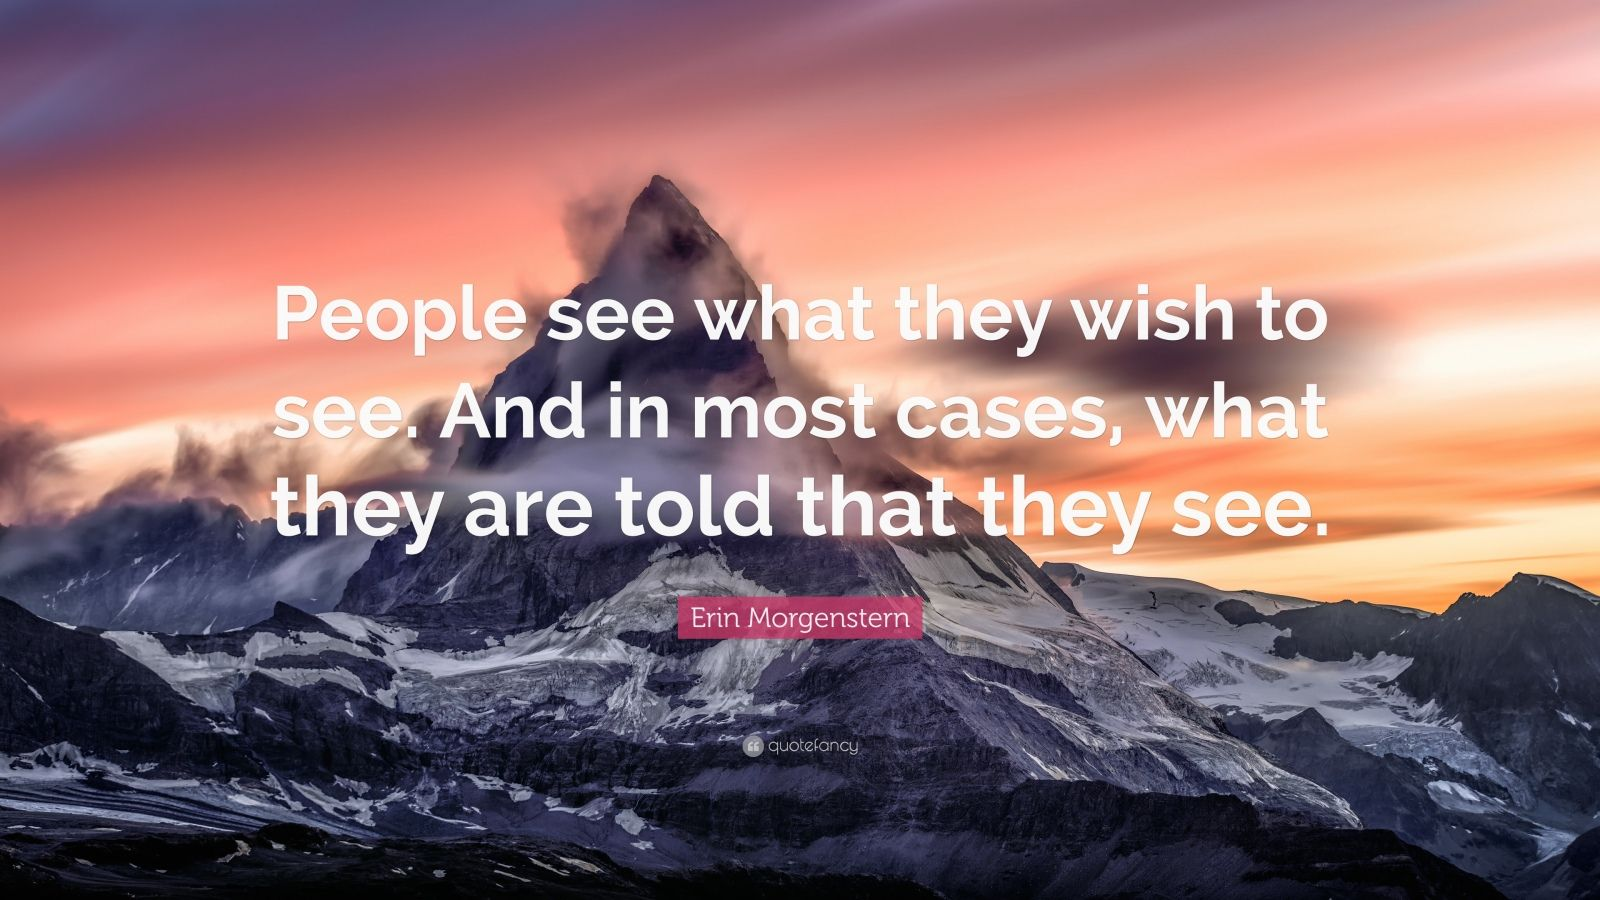 """Erin Morgenstern Quote: """"People see what they wish to see. And in most cases, what they are told that they see."""""""